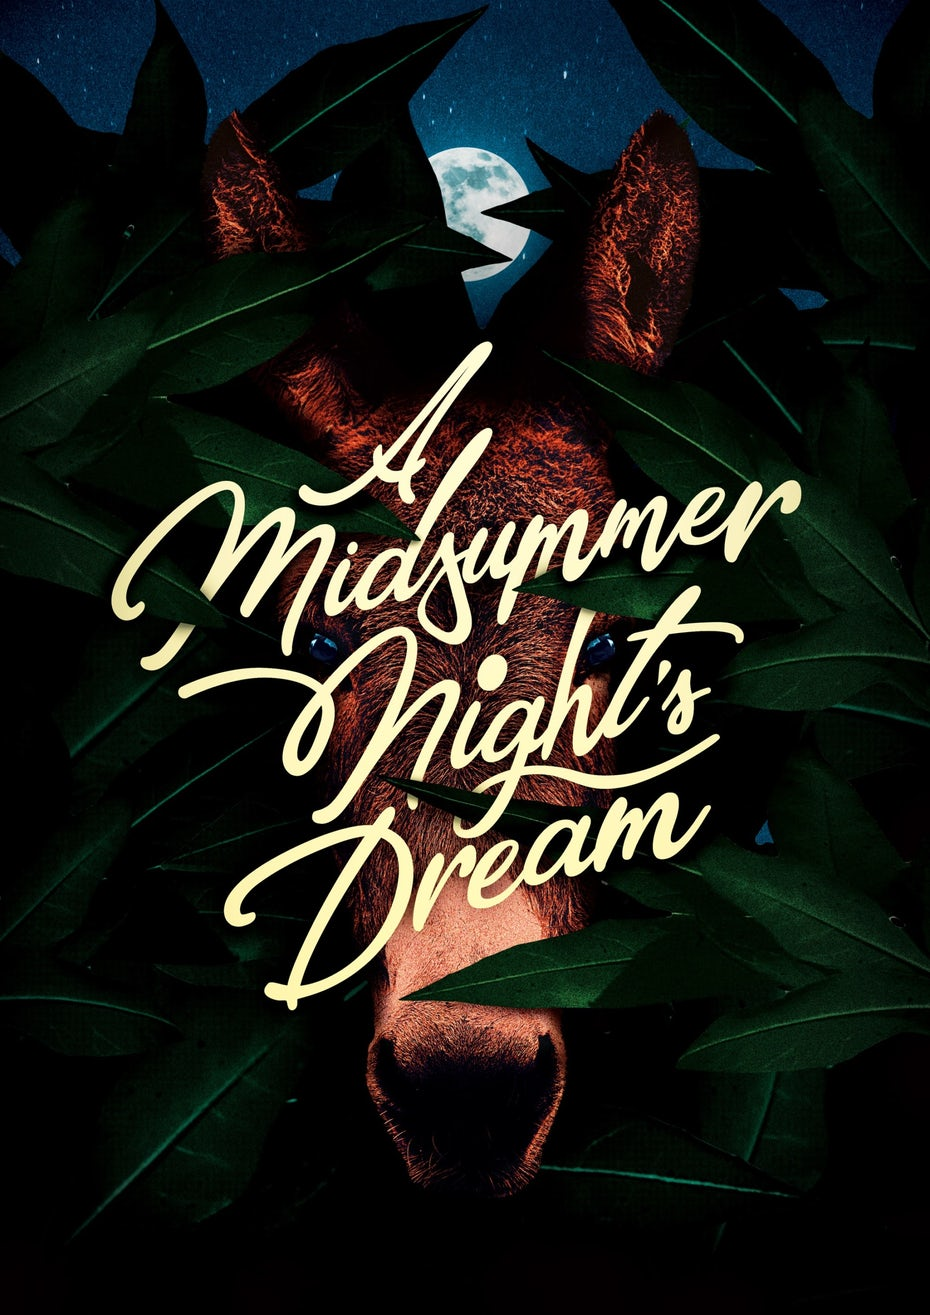 A Midsummer Night's Dream illustration